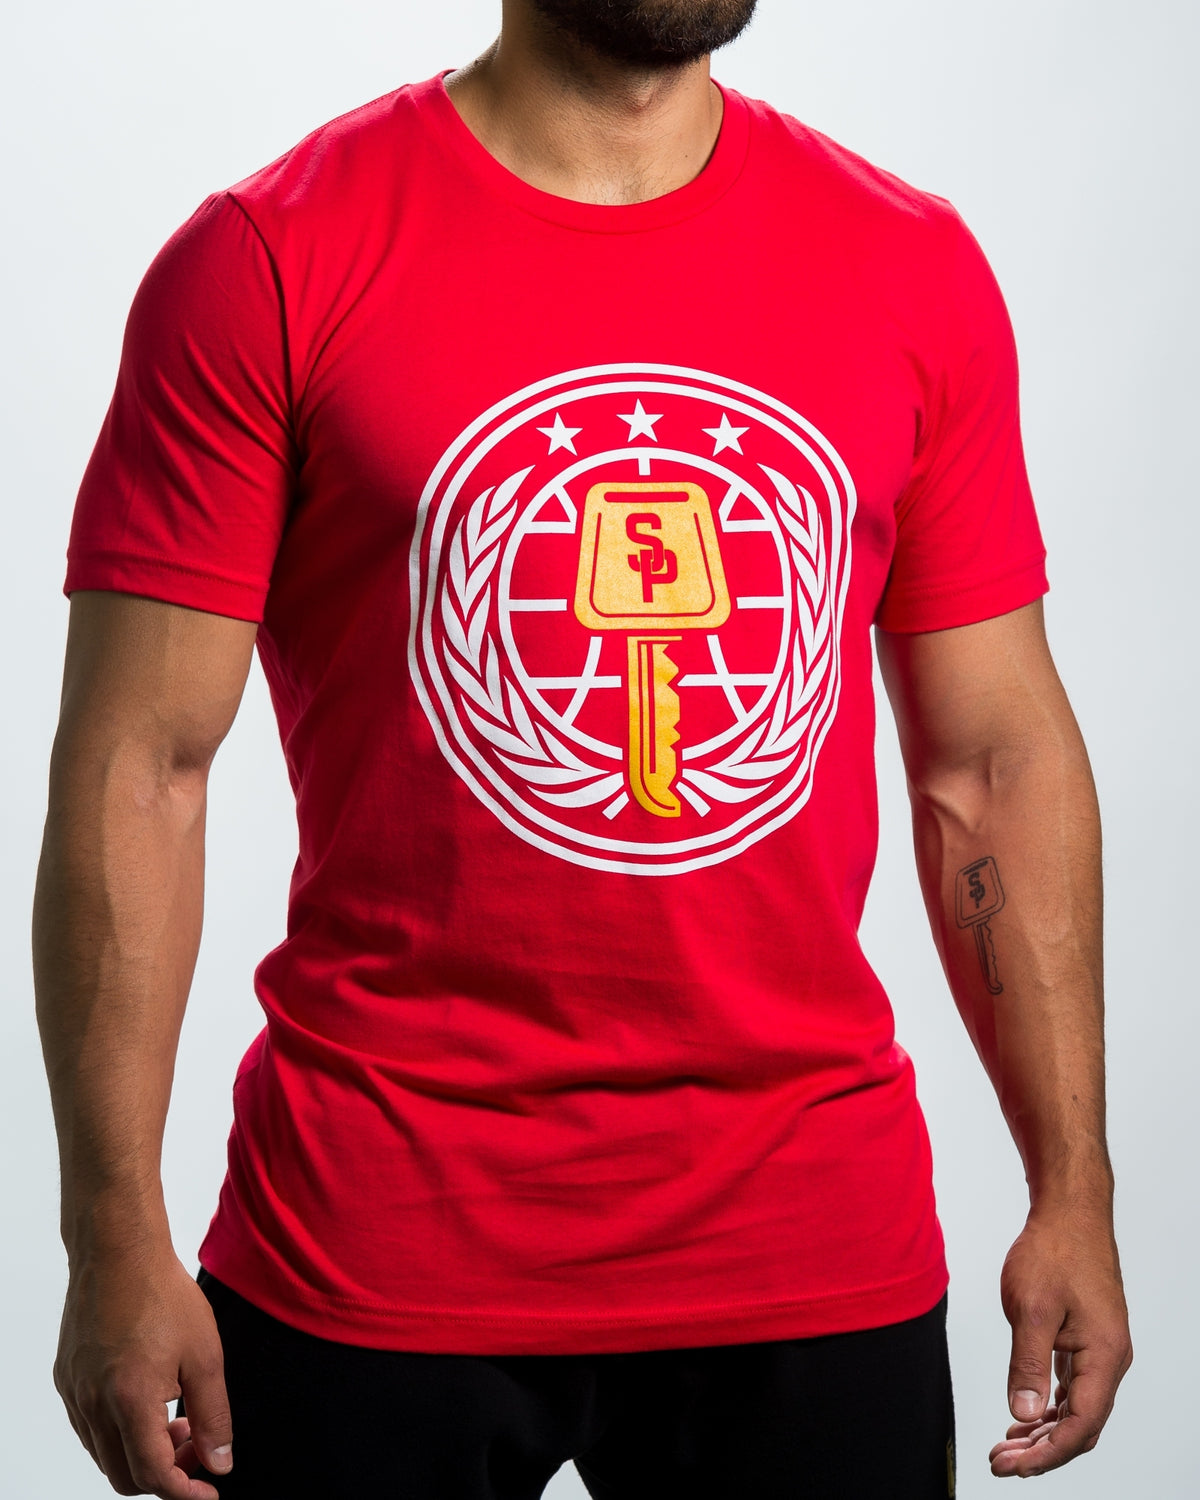 RED Veteran Tee - Men's - Street Parking